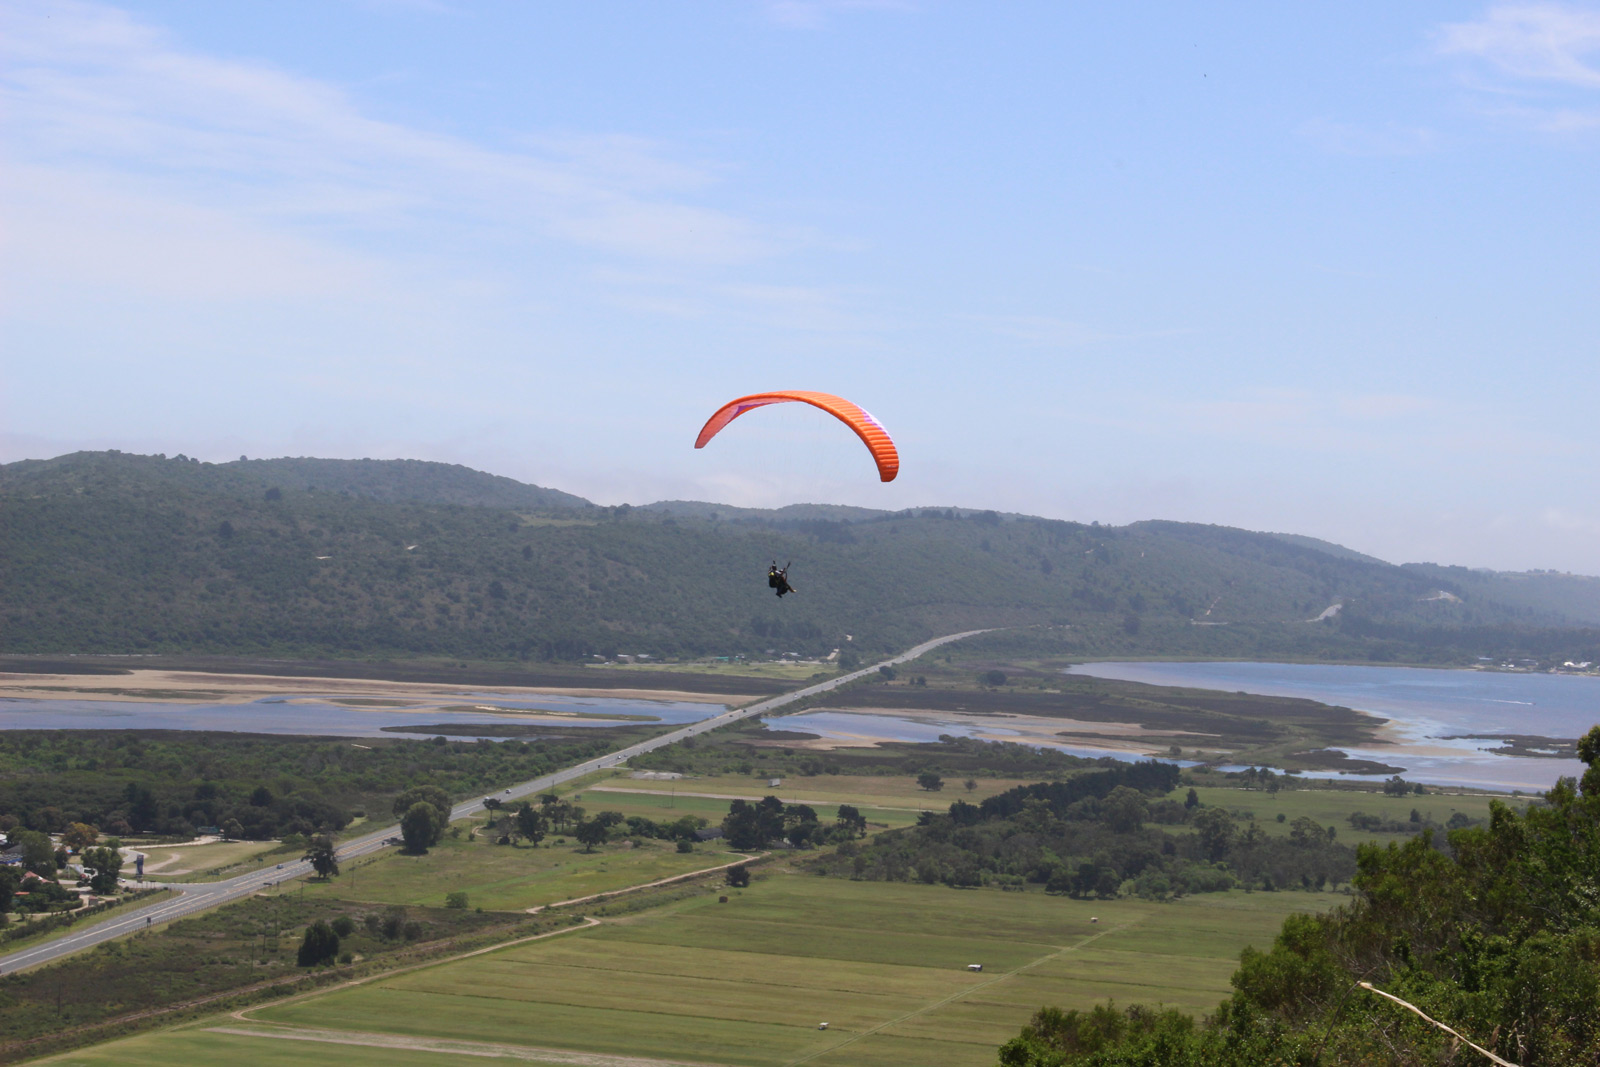 "Fly like a bird with <a href=""http://www.altitudeparagliding.com"" target=""_blank"">Altitude Paragliding</a> ©David Winch"